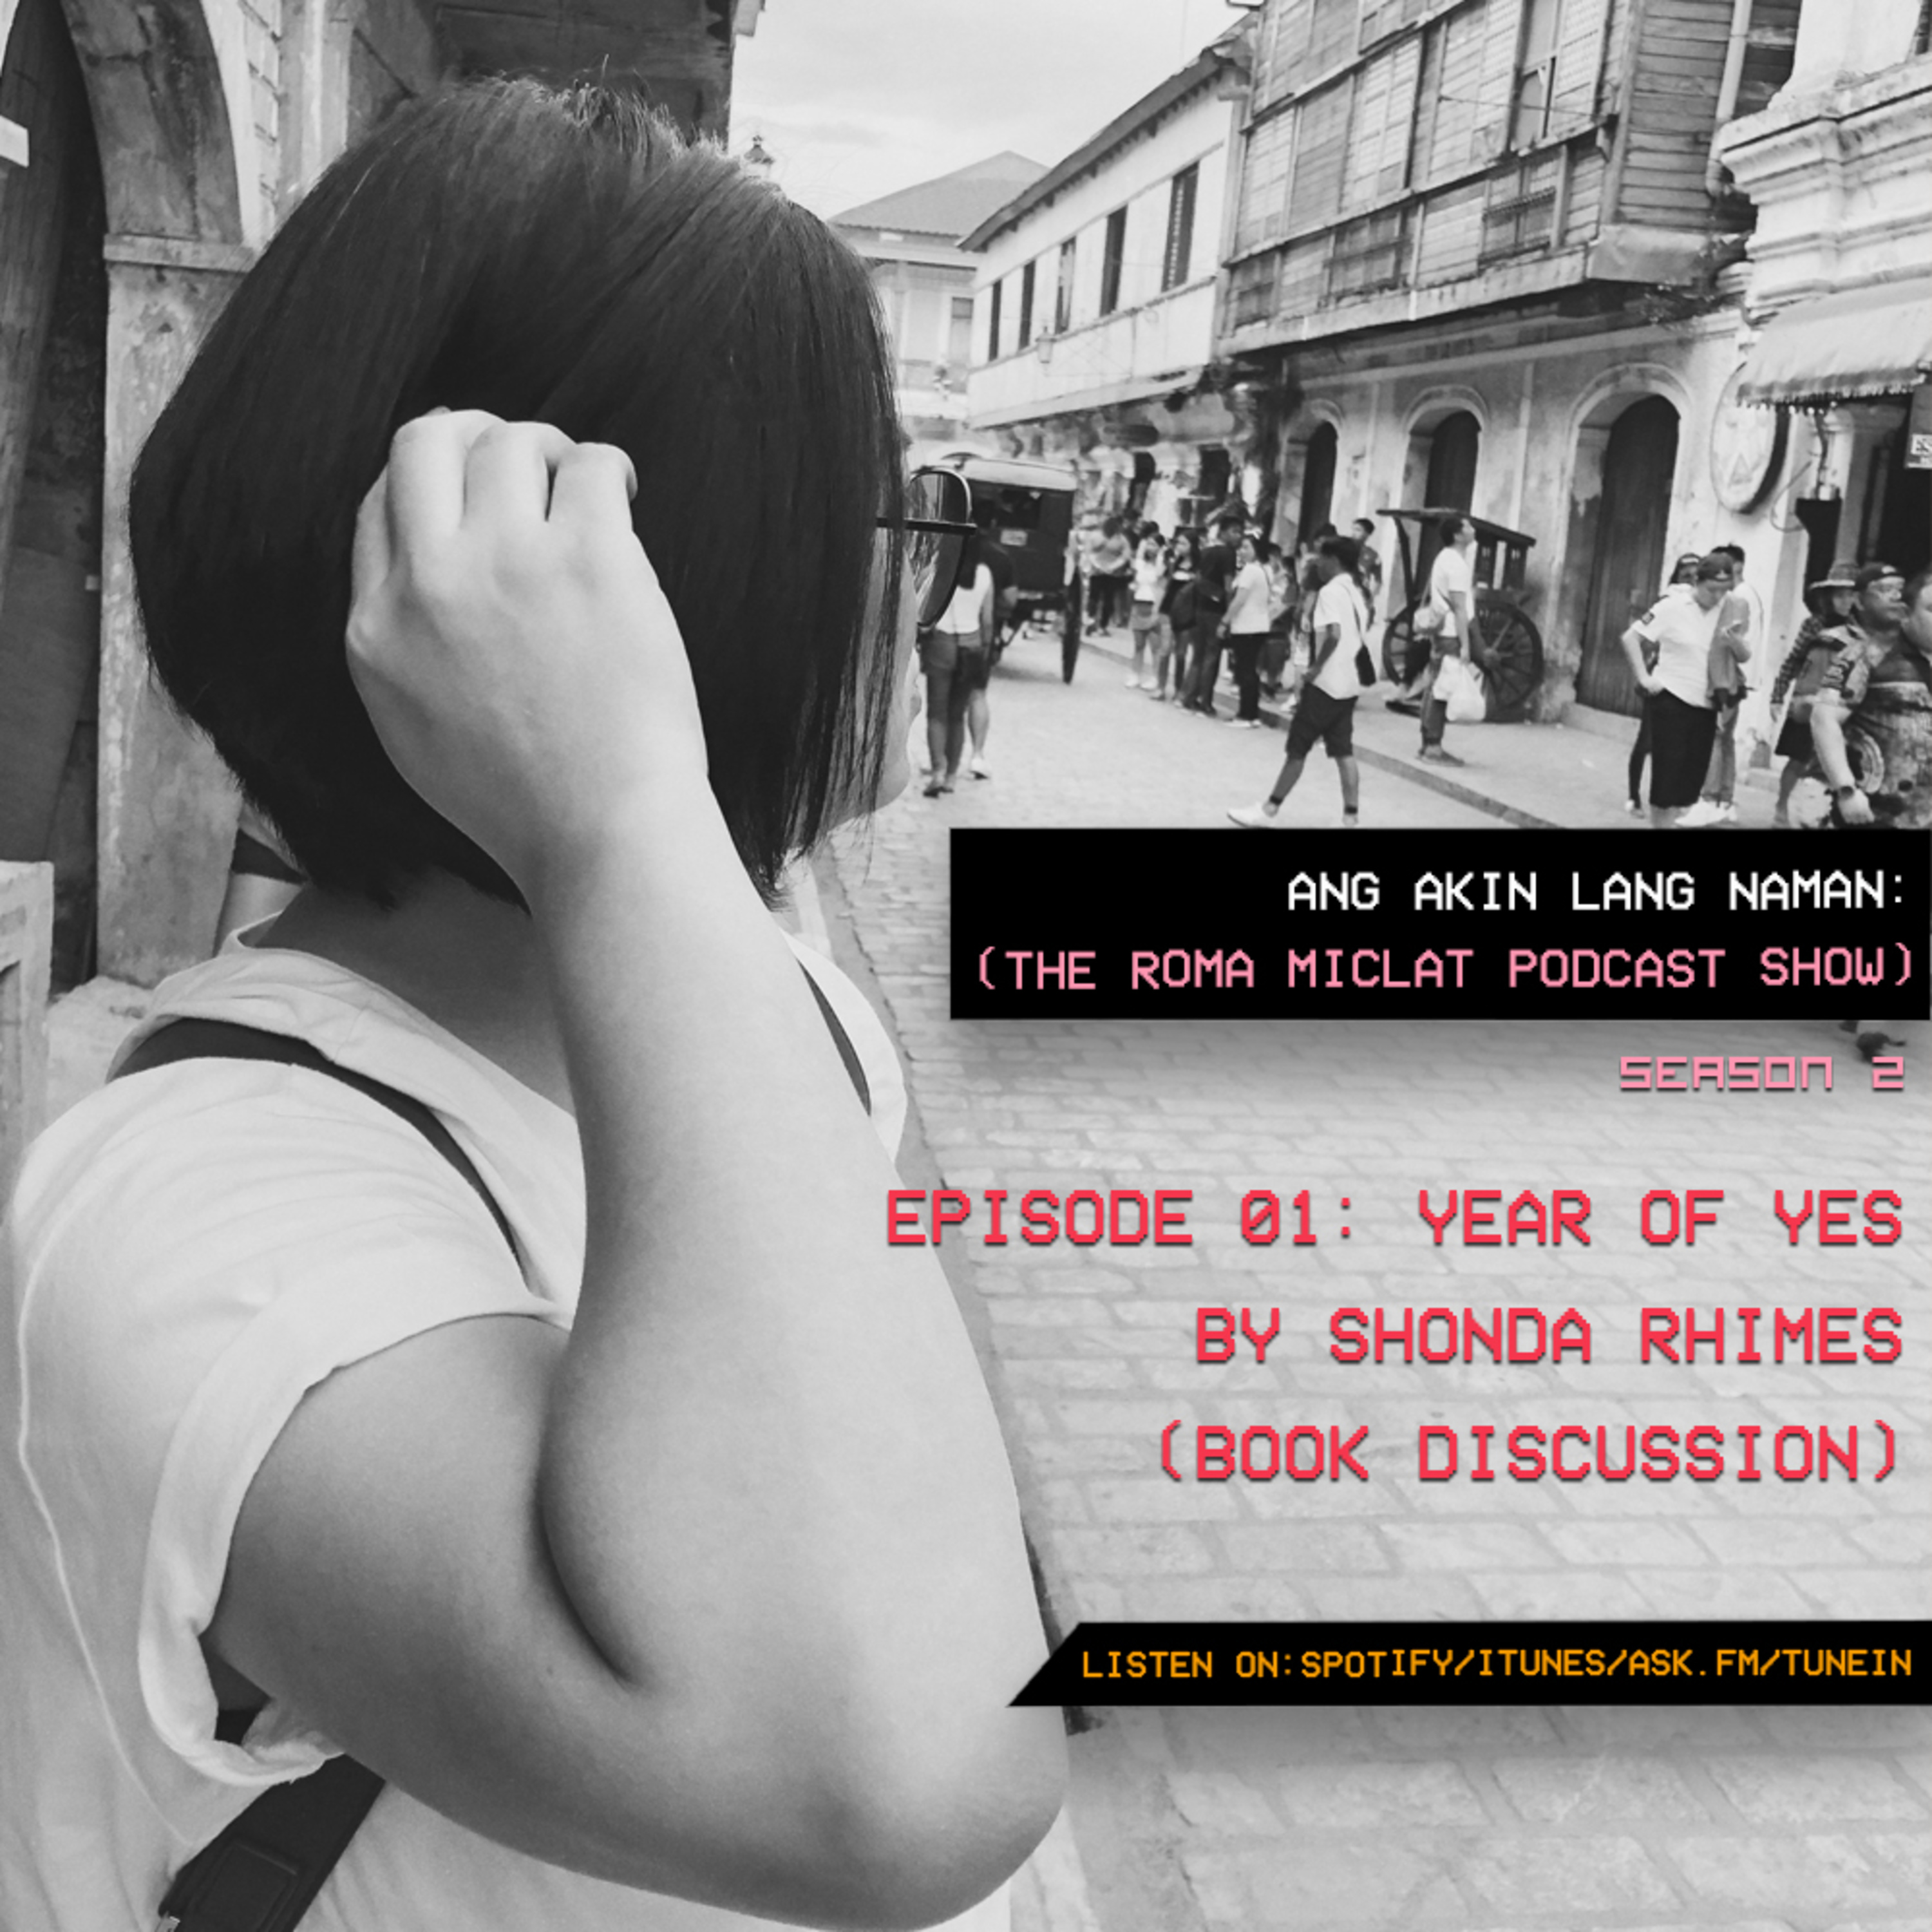 EPISODE 11 - Year of YES by Shonda Rhimes (Book Discussion)